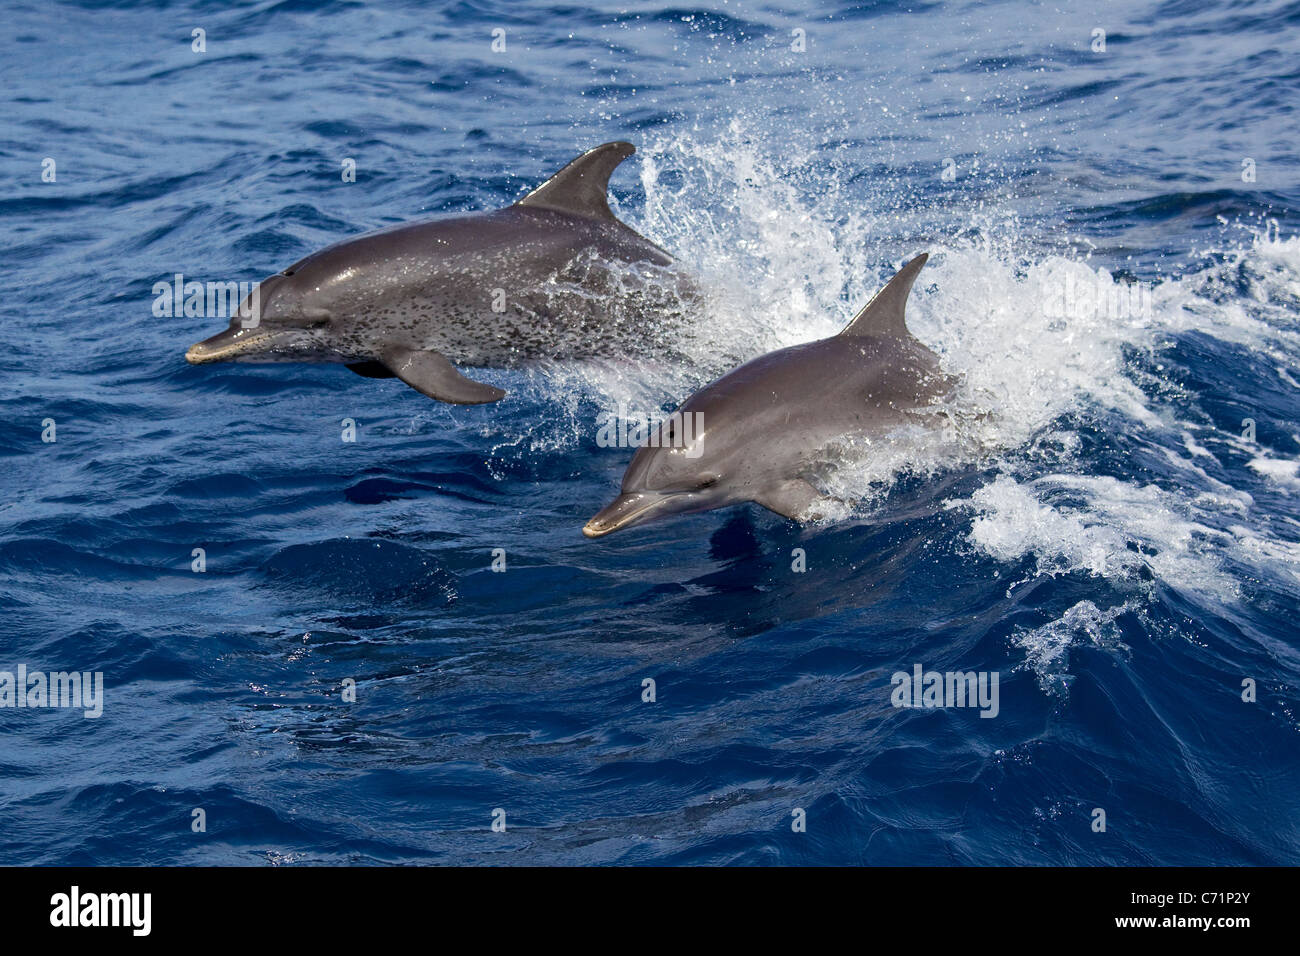 Dolphins, two spotted dolphins, Stenella attenuata, leap in ocean, dolphin leaping - Stock Image